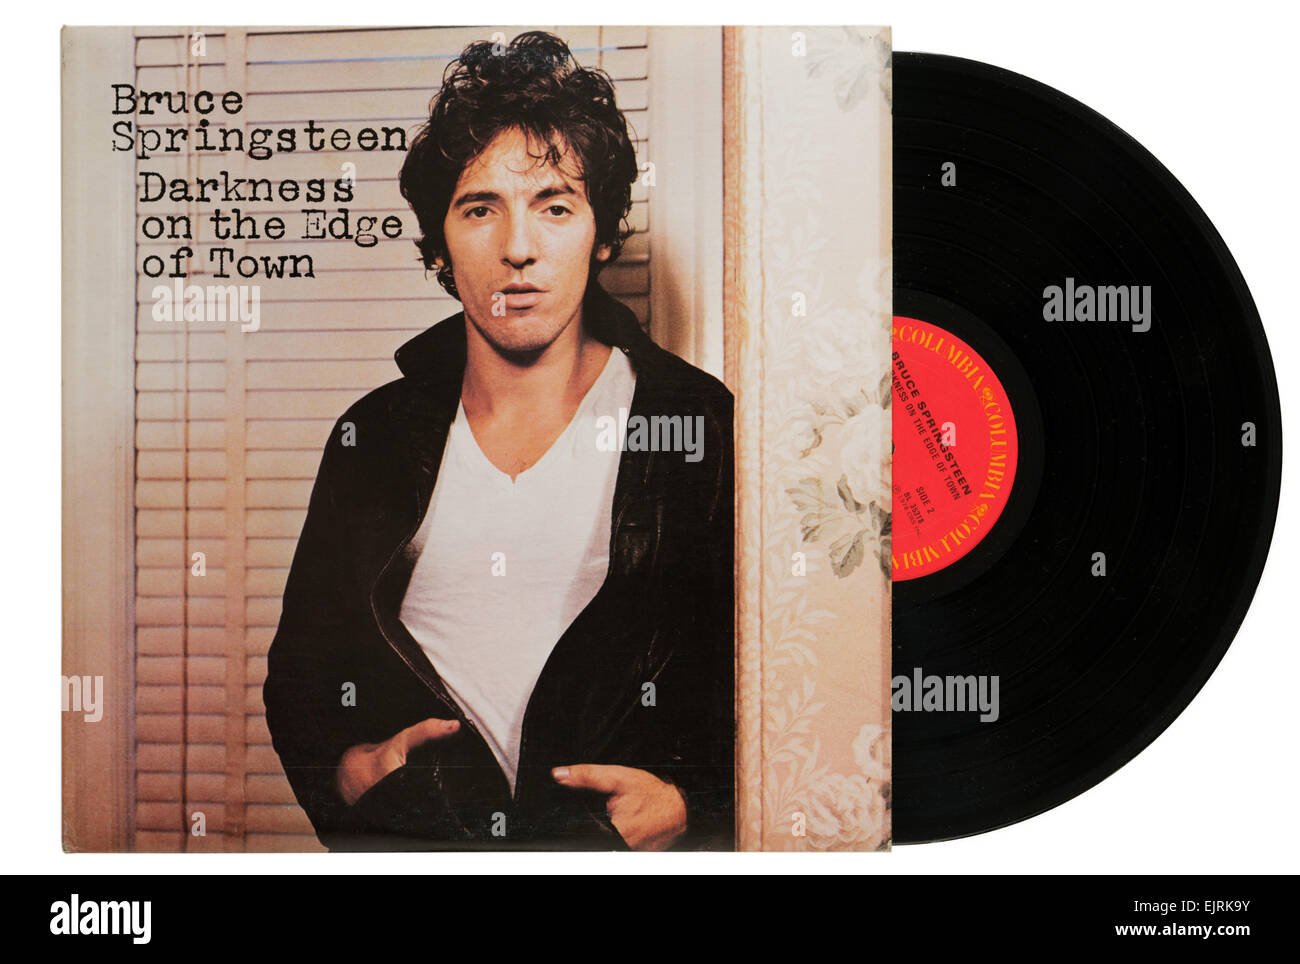 Bruce Springsteen album Darkness on the Edge of Town - Stock Image